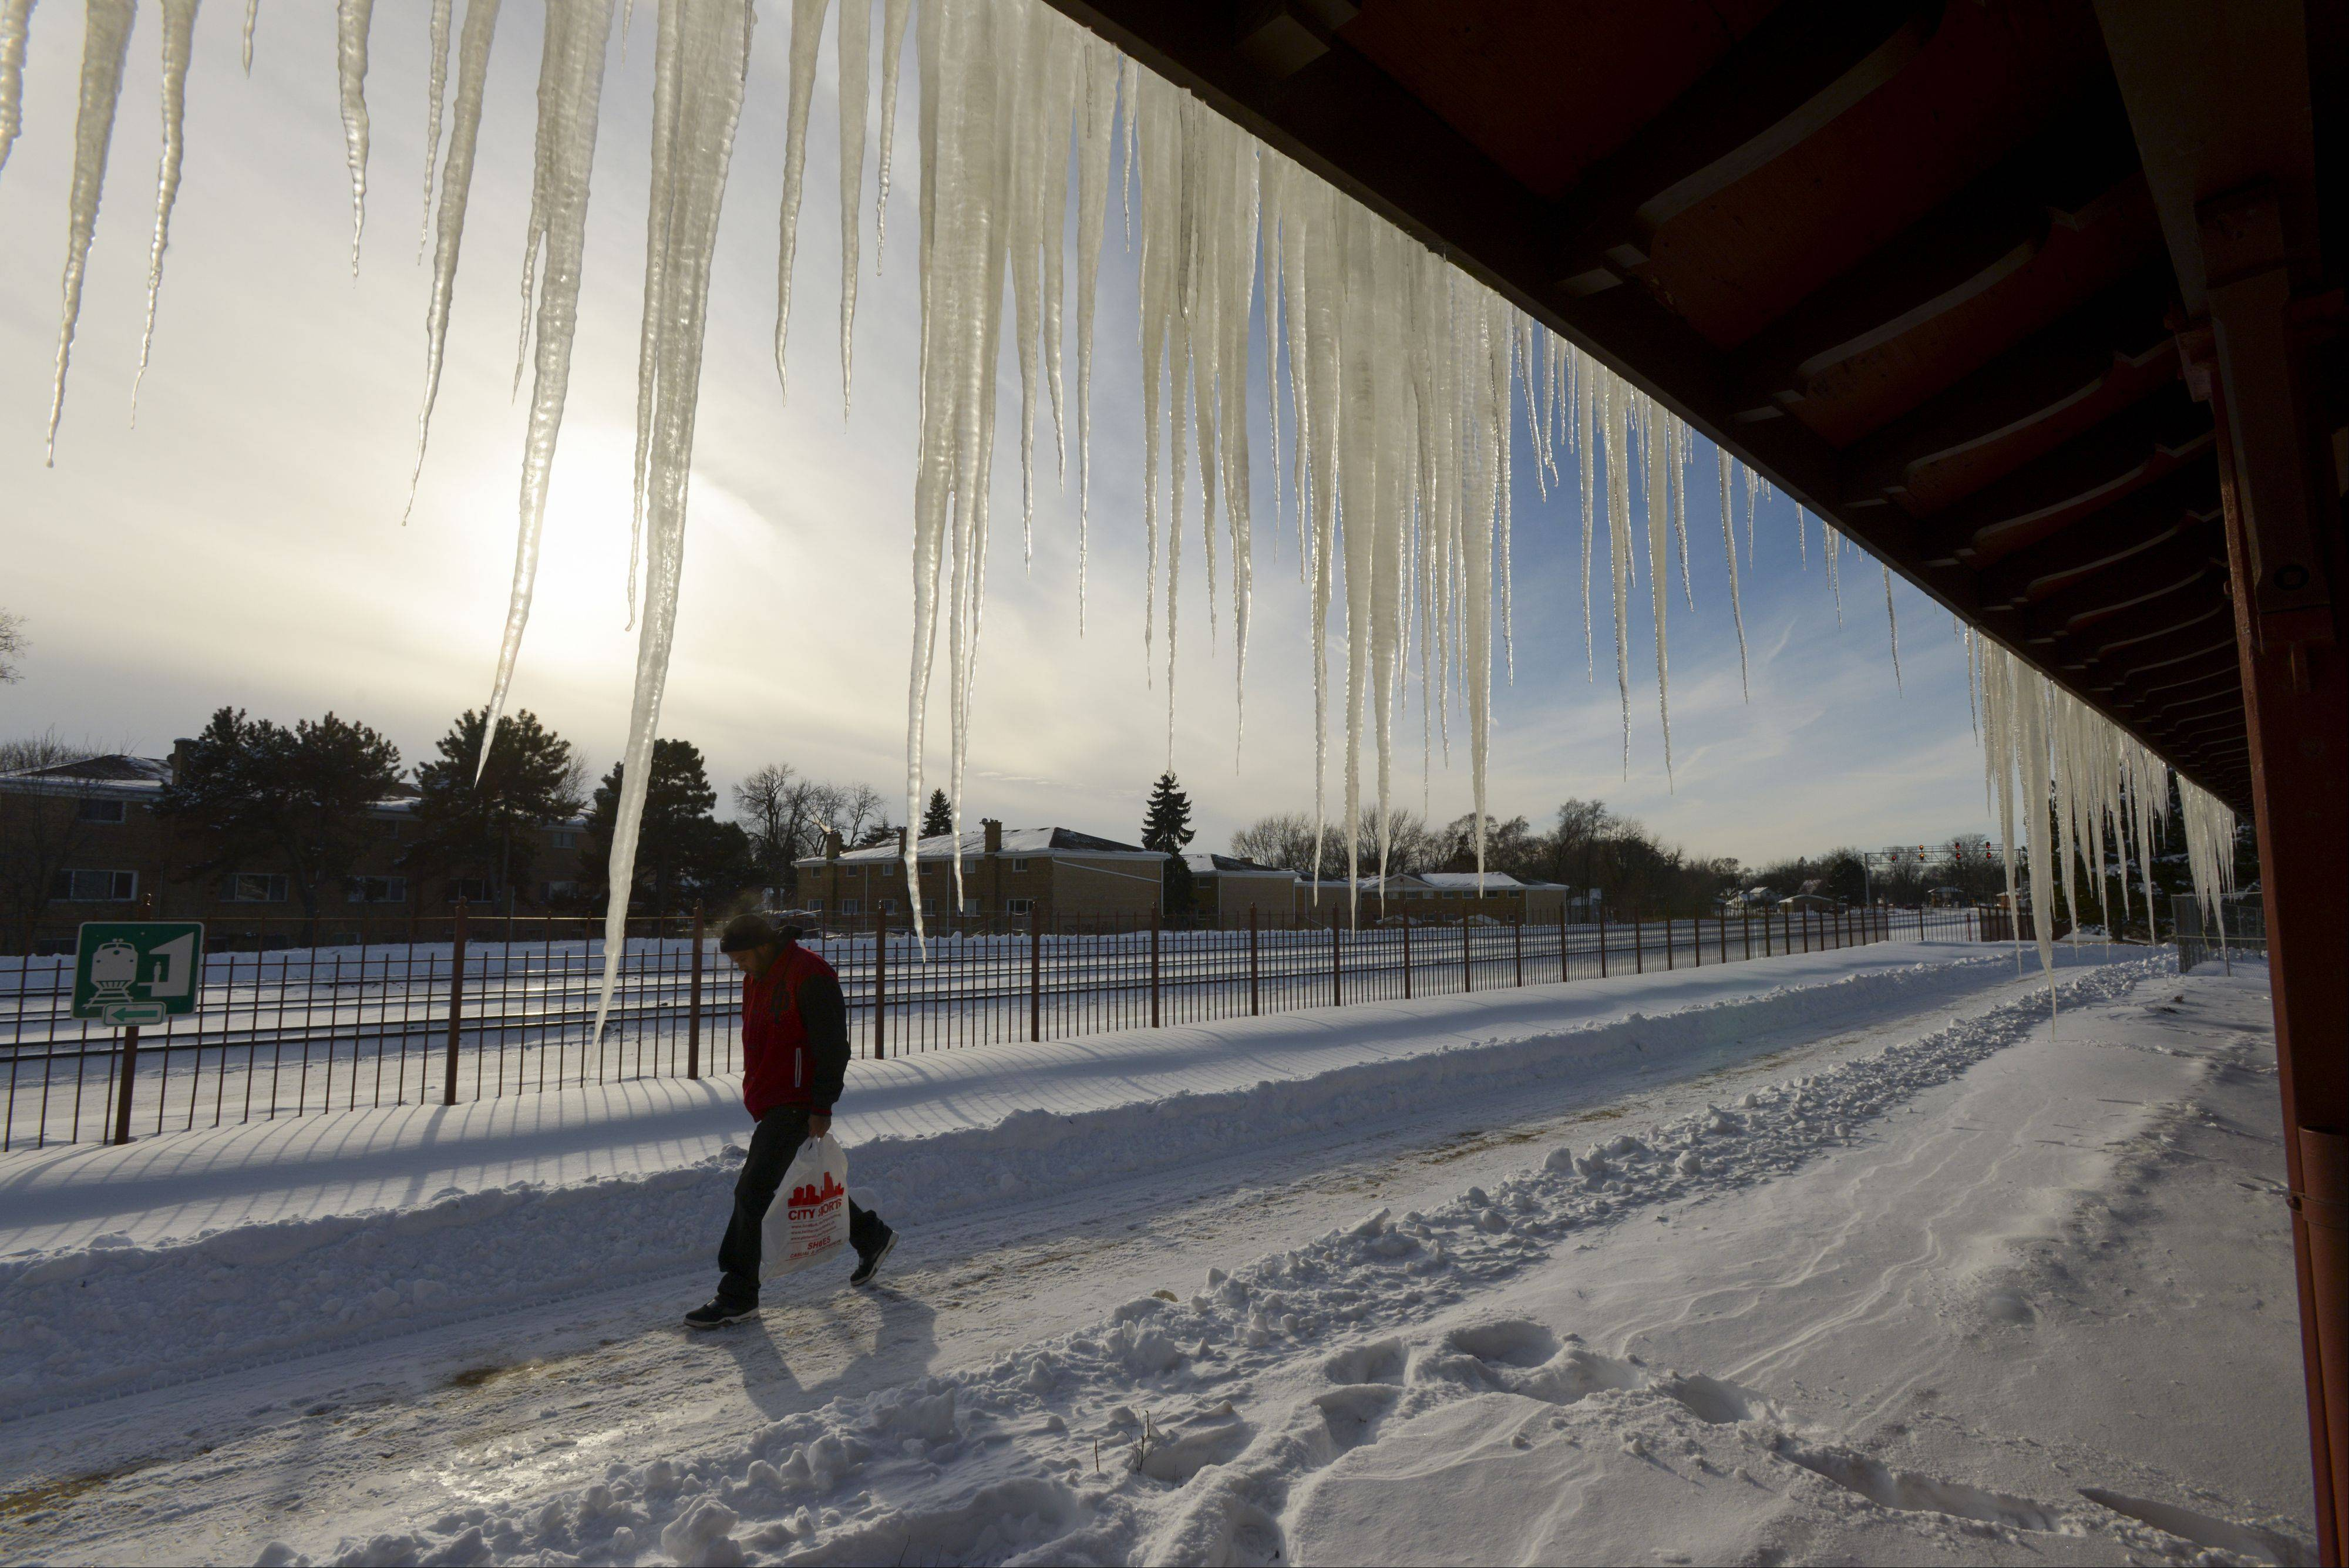 Mark Black/mblack@dailyherald.comA pedestrian walks past the large icicles hanging from the roof of the Wayne and Helen Fox Community Center in West Chicago.